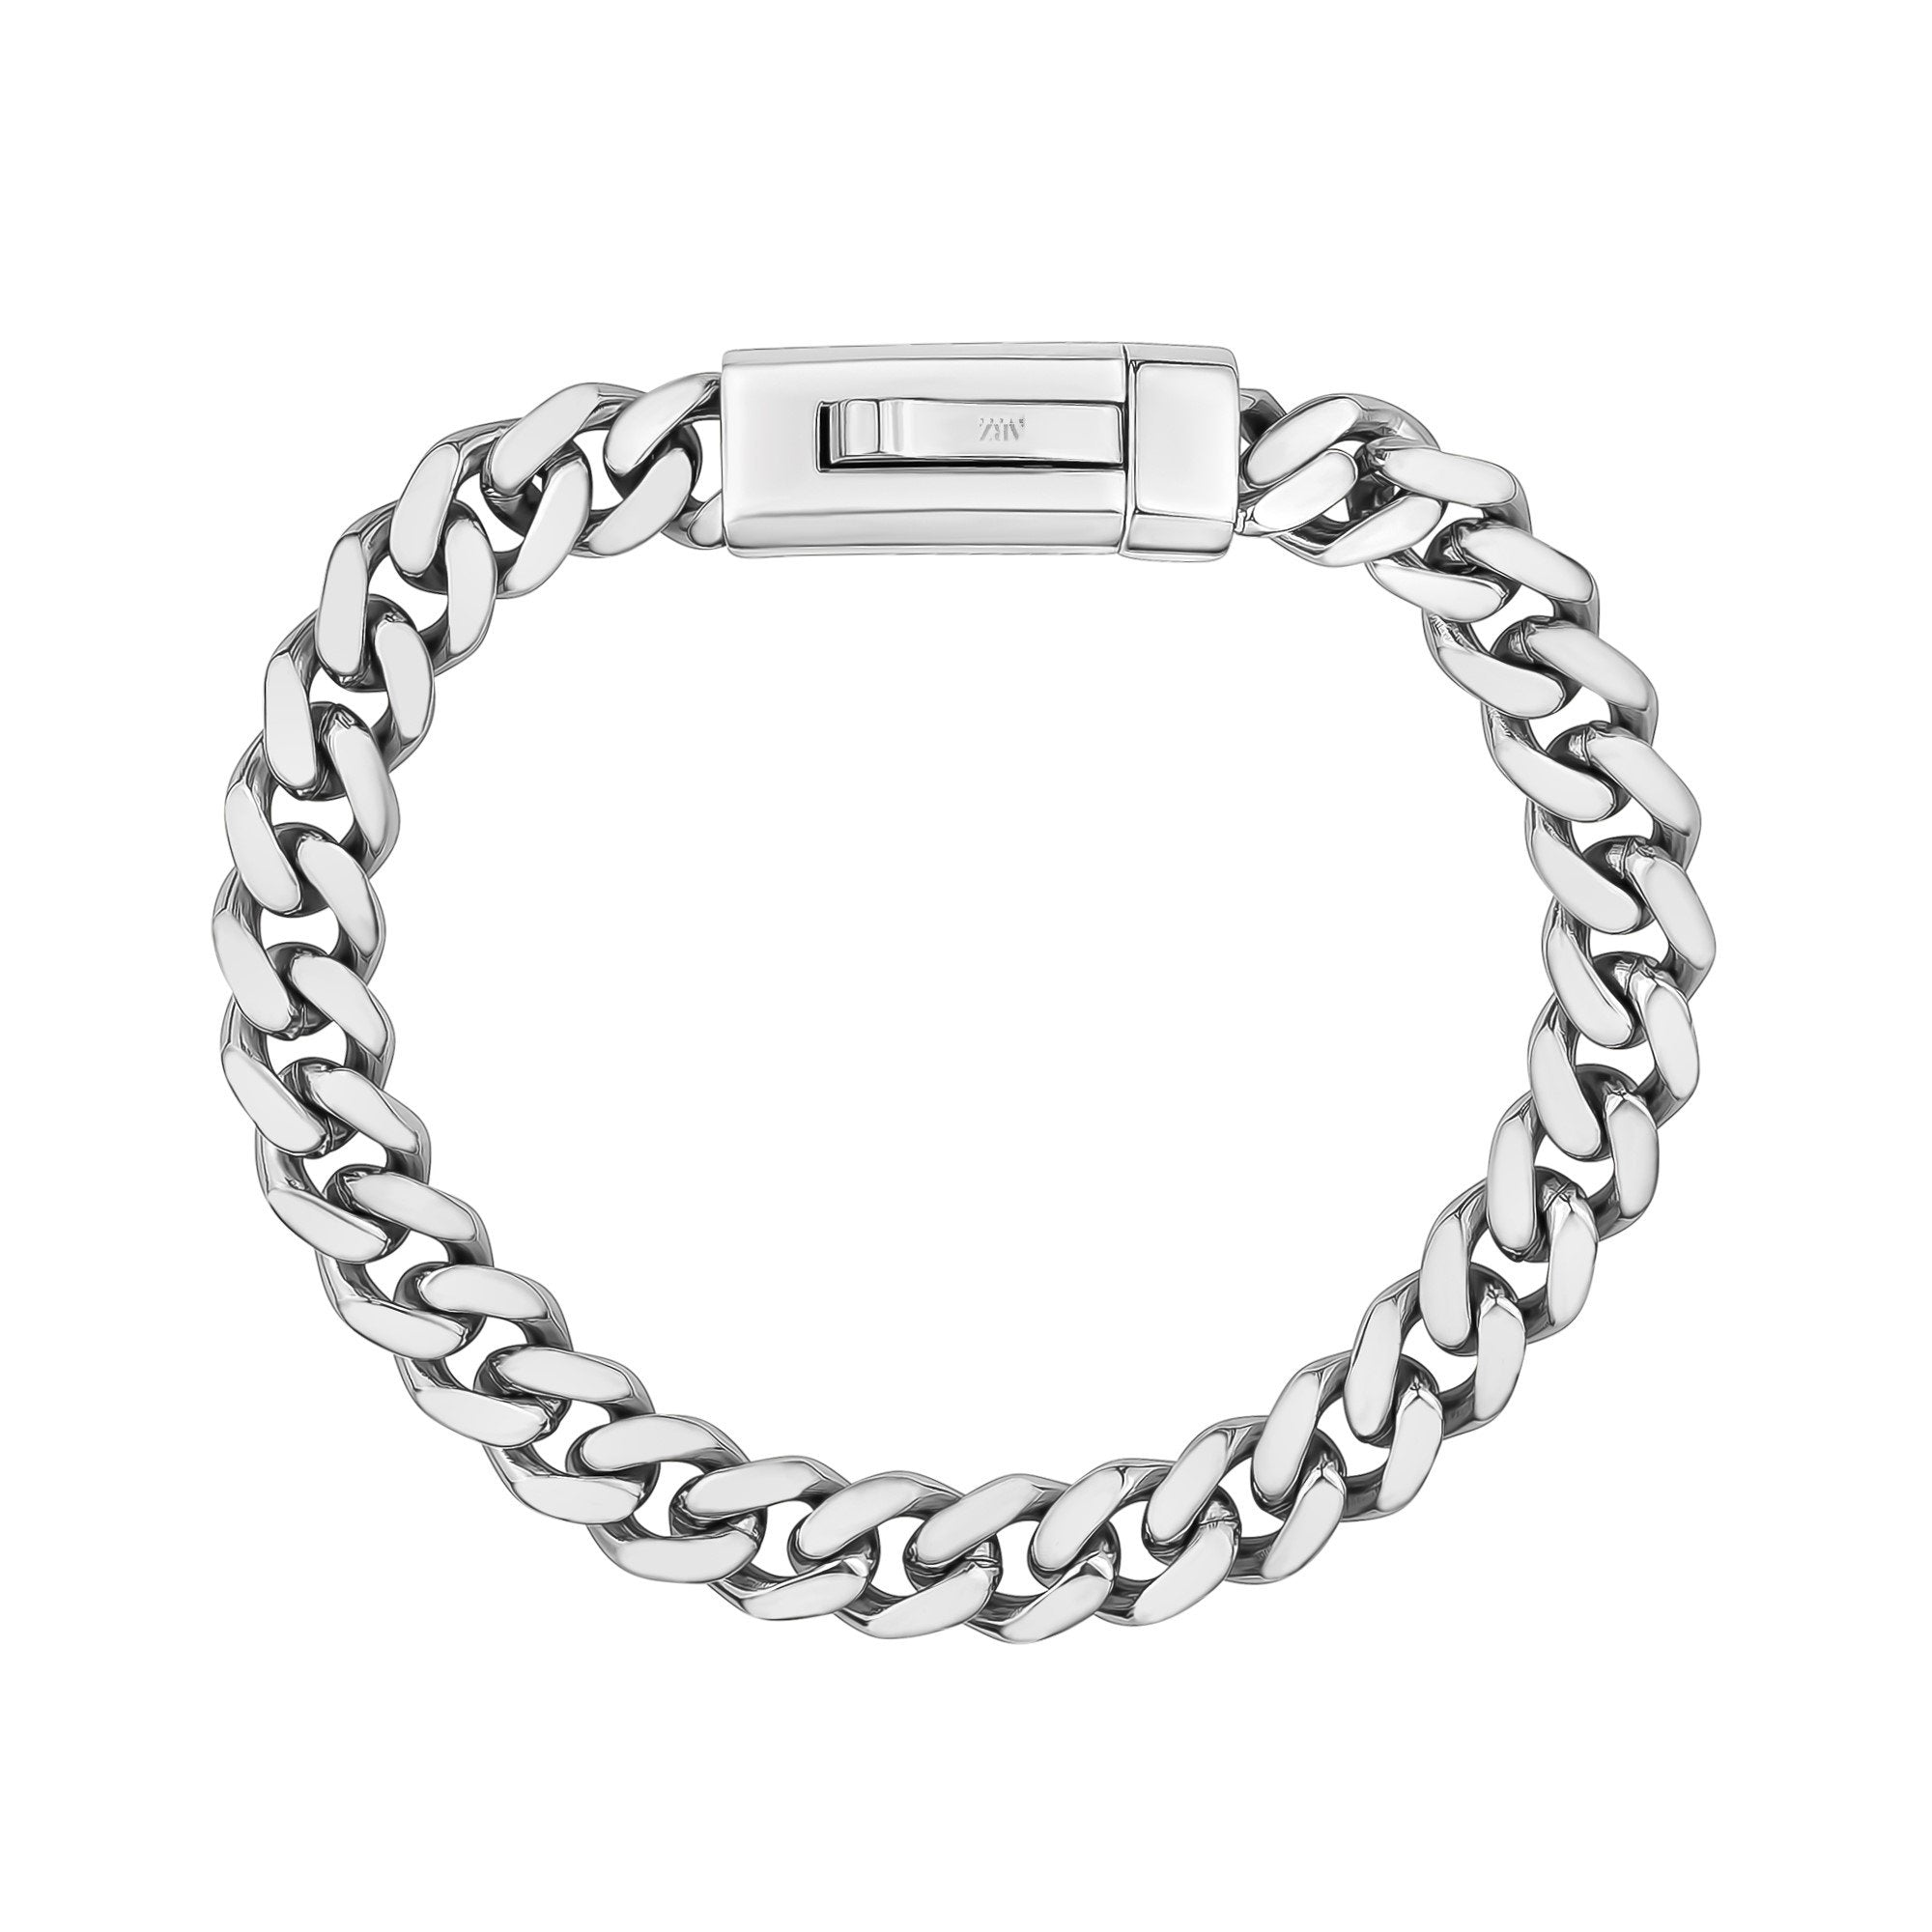 Unisex Steel Bracelet - 9mm Stainless Steel Cuban Link Engravable Bracelet